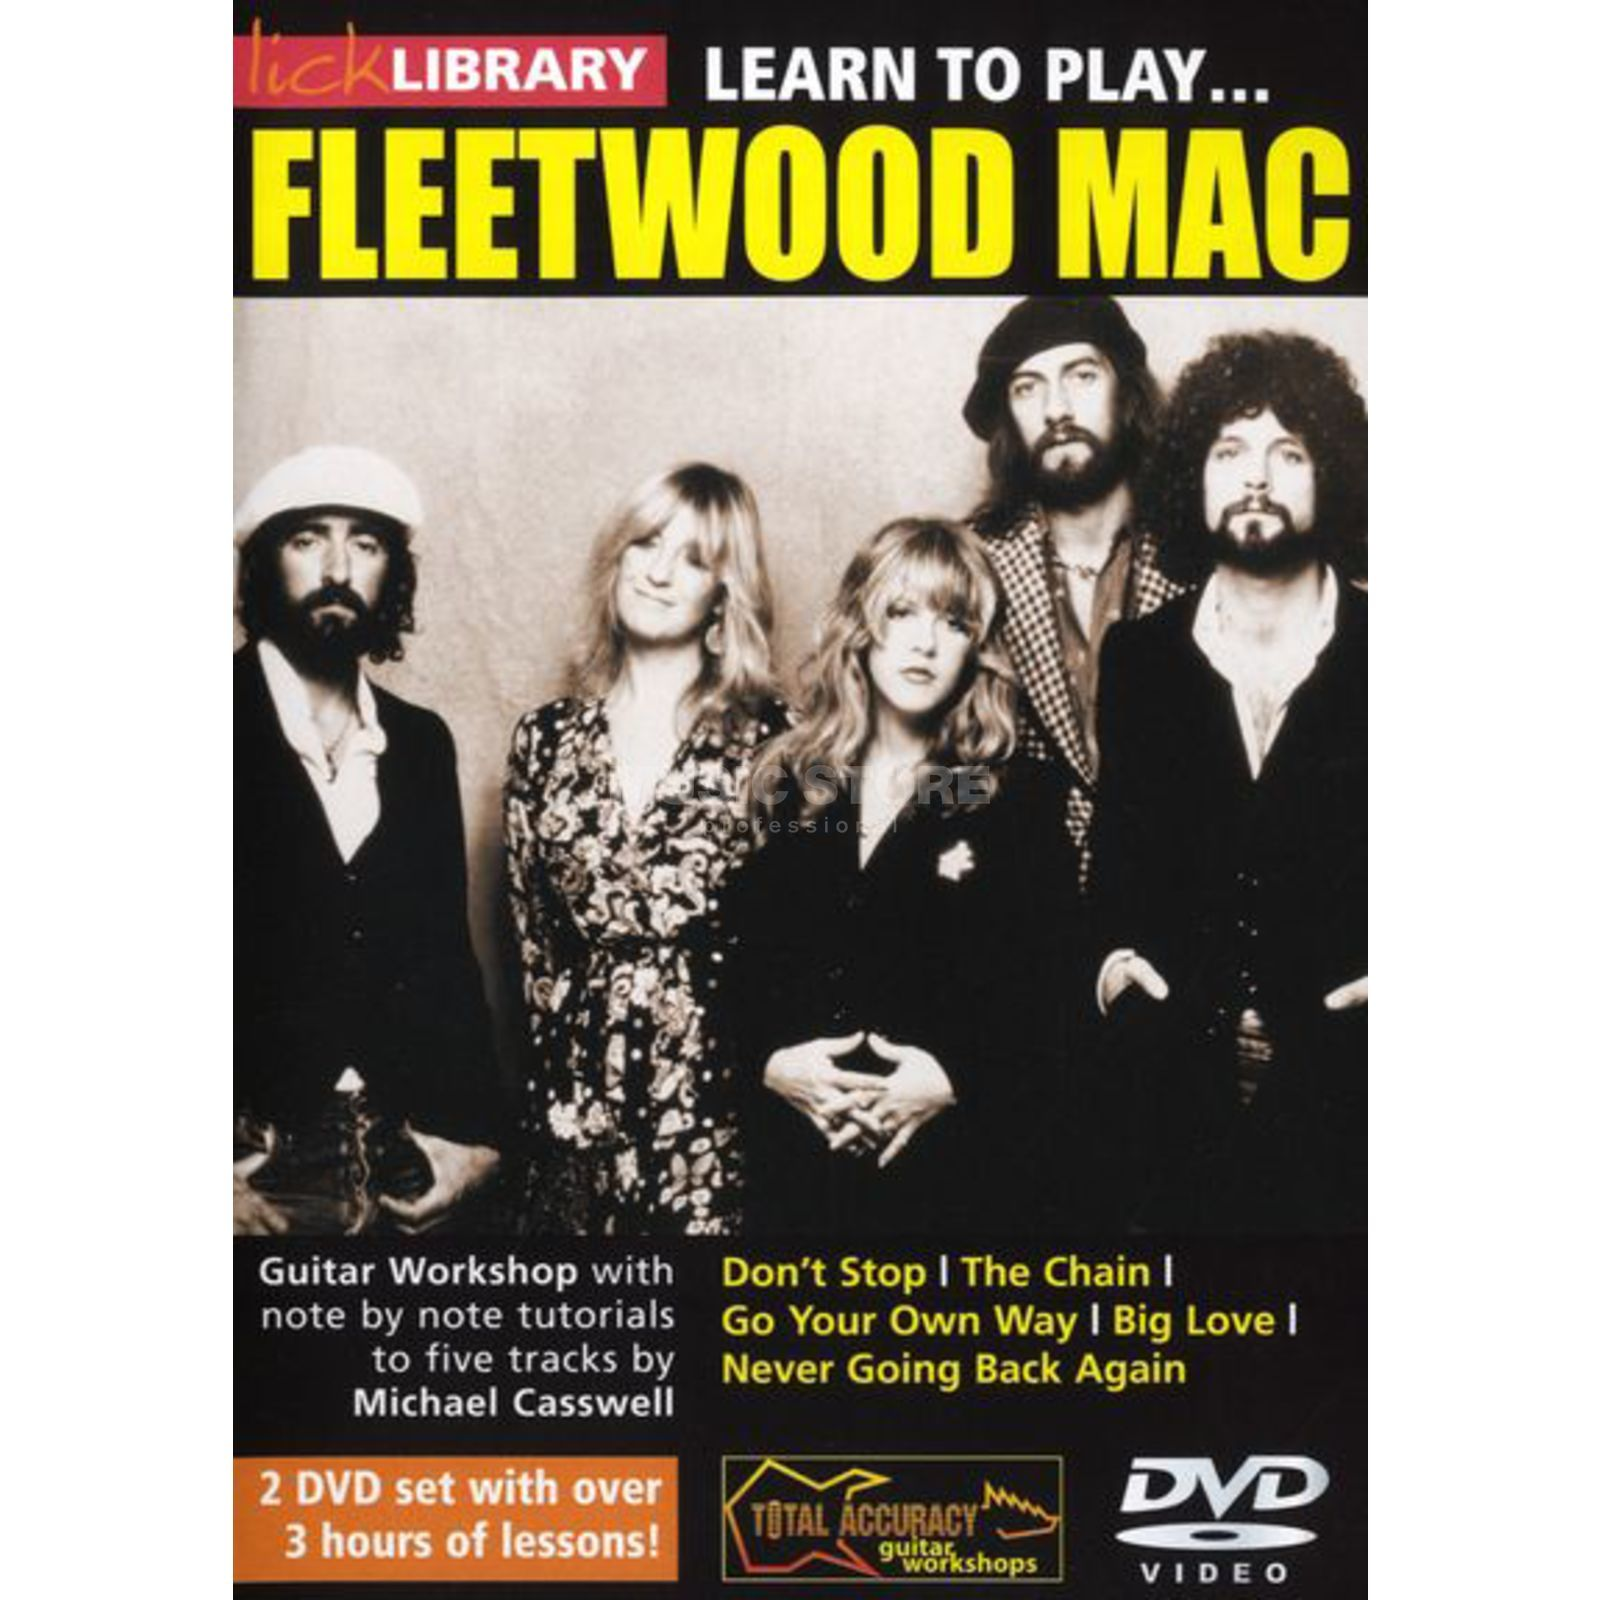 Roadrock International Lick Library: Learn To Play Fleetwood Mac DVD Produktbild